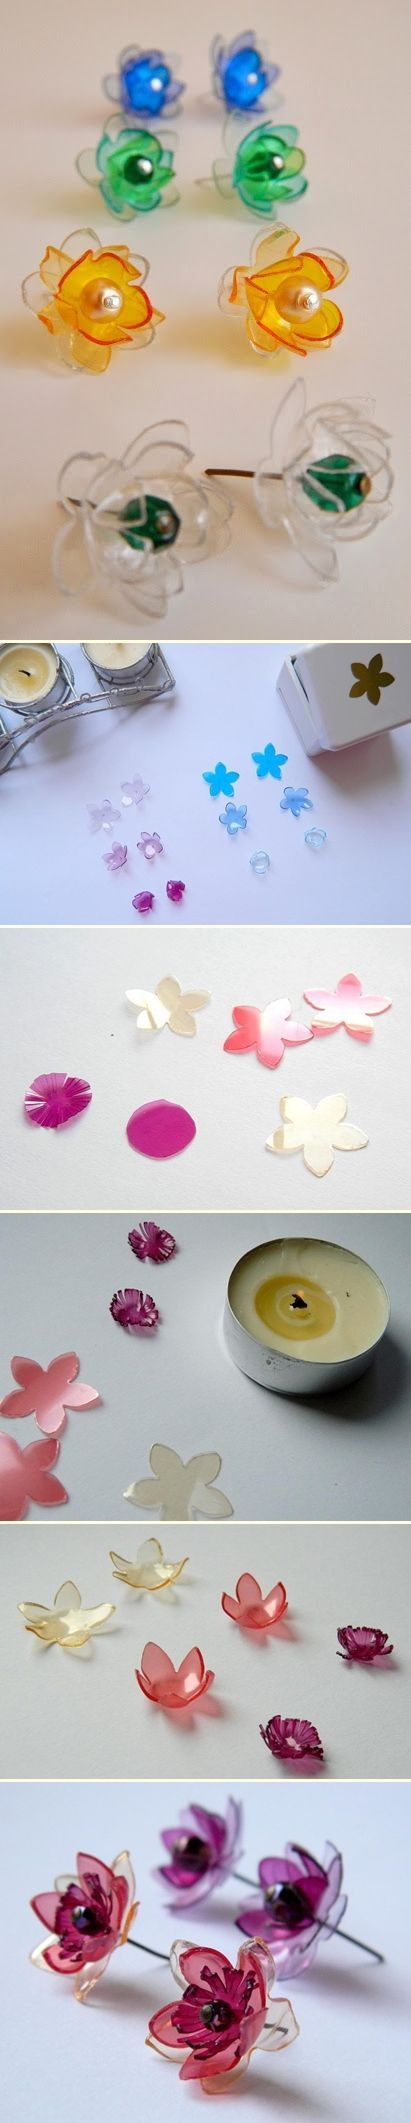 Perfect DIY Flower Earrings From Plastic Bottles Great For All Ages.If You Have  Pierced Ears Hereu0027s A Cute Earring. | Creative Projects | Pinterest | Diy  Flower, ... Images